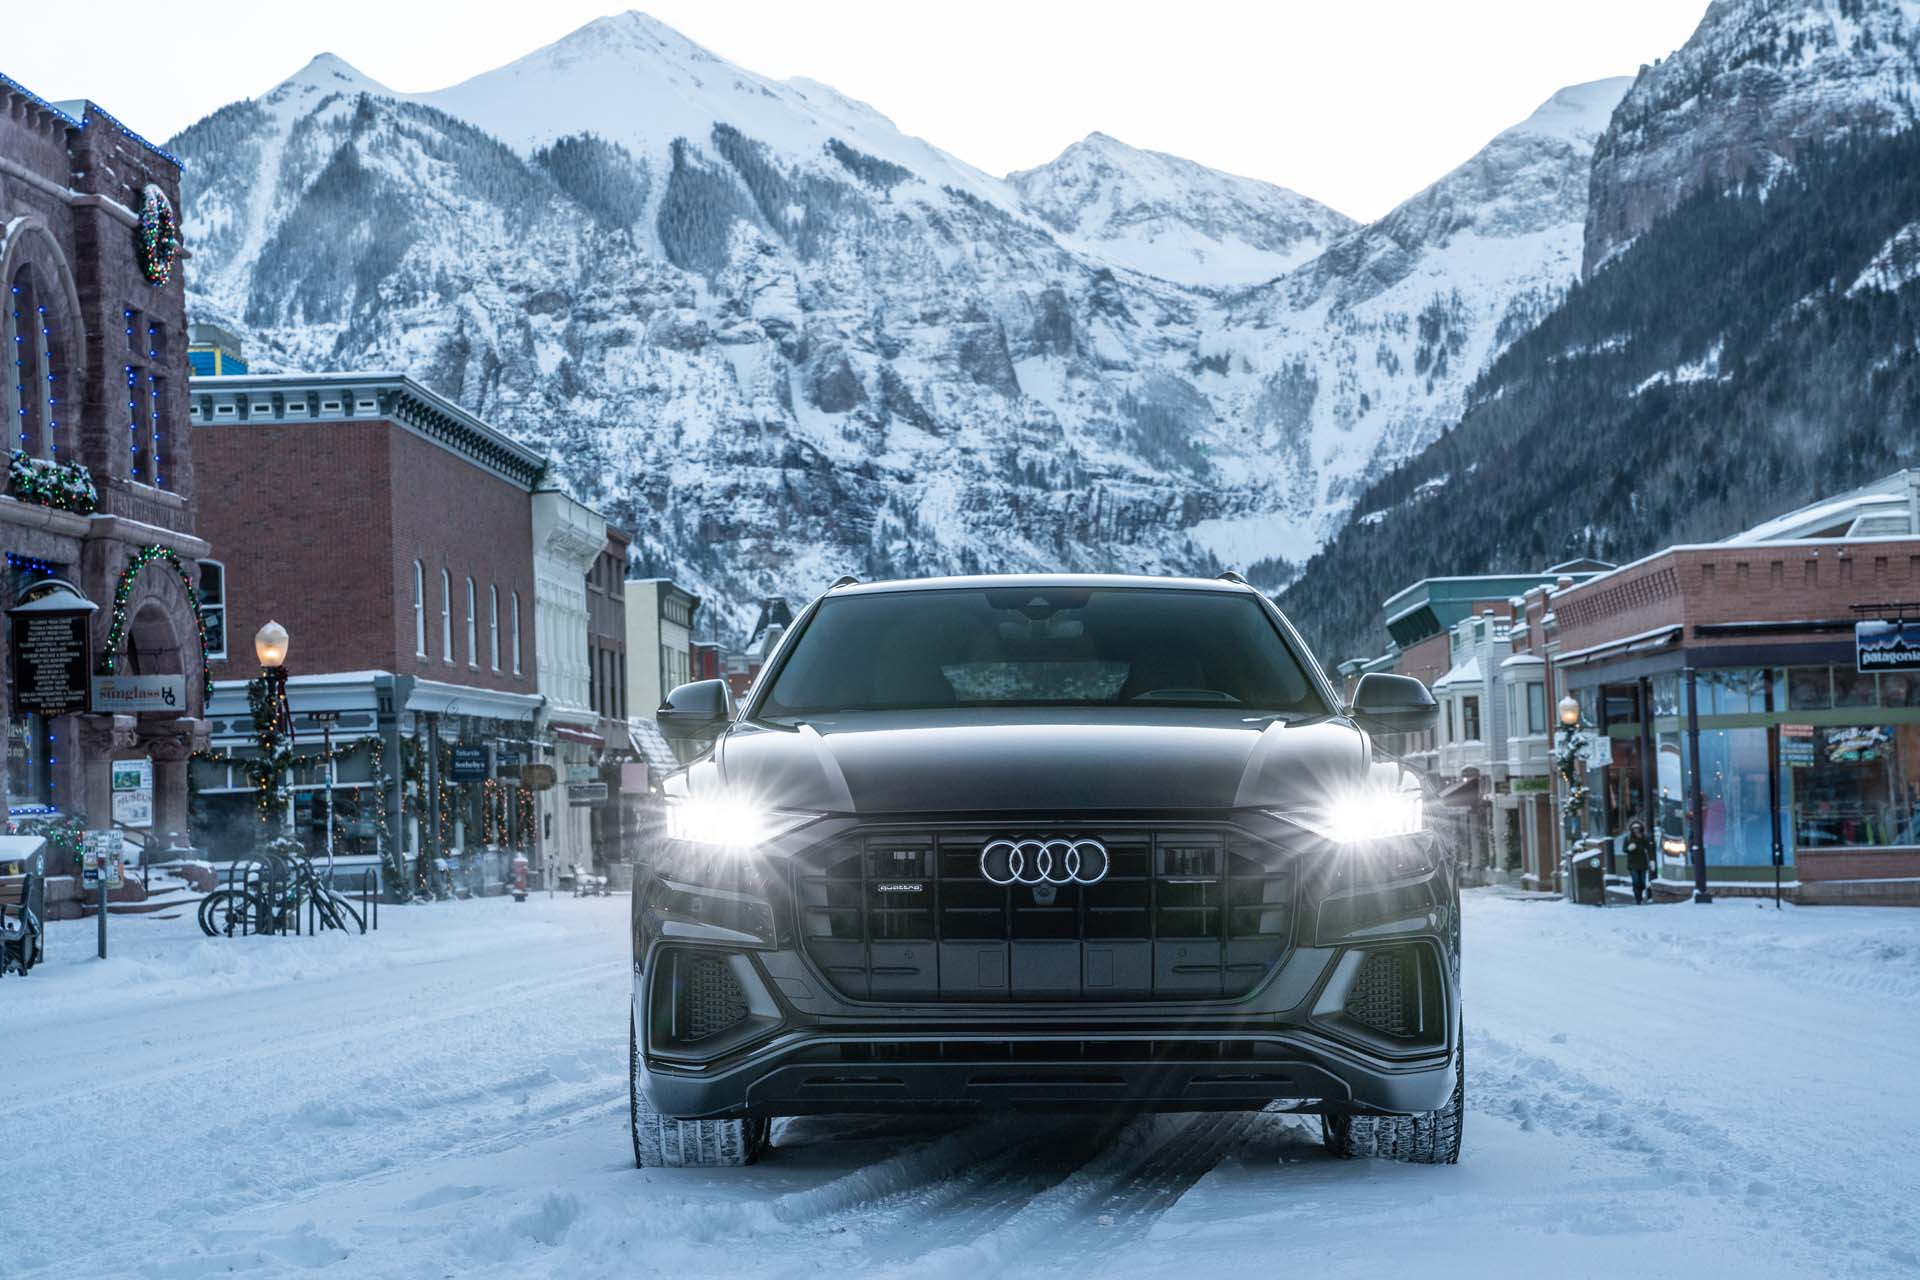 2019 Audi Q8 Review Update Luxury Crossover Lode Runner